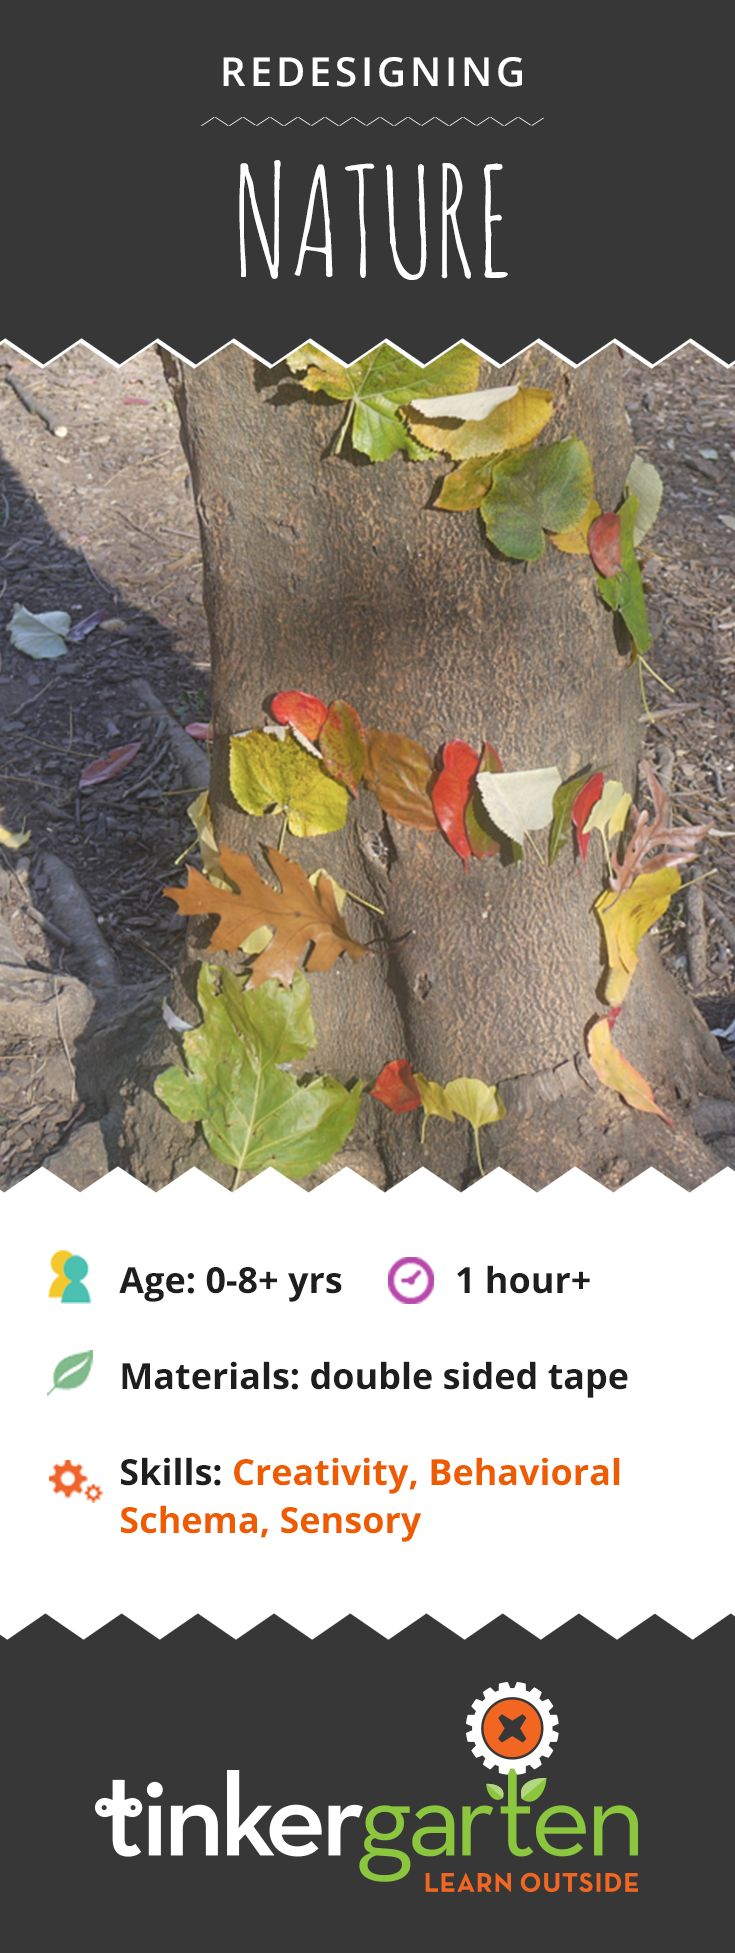 Take inspiration from land artist, Andy Goldsworthy, and give kids the chance to take nature's endless art supplies and develop a sense of design. Sounds challenging? All you need is double-sided tape, time and the right nature treasures lying about. Click through to learn how!